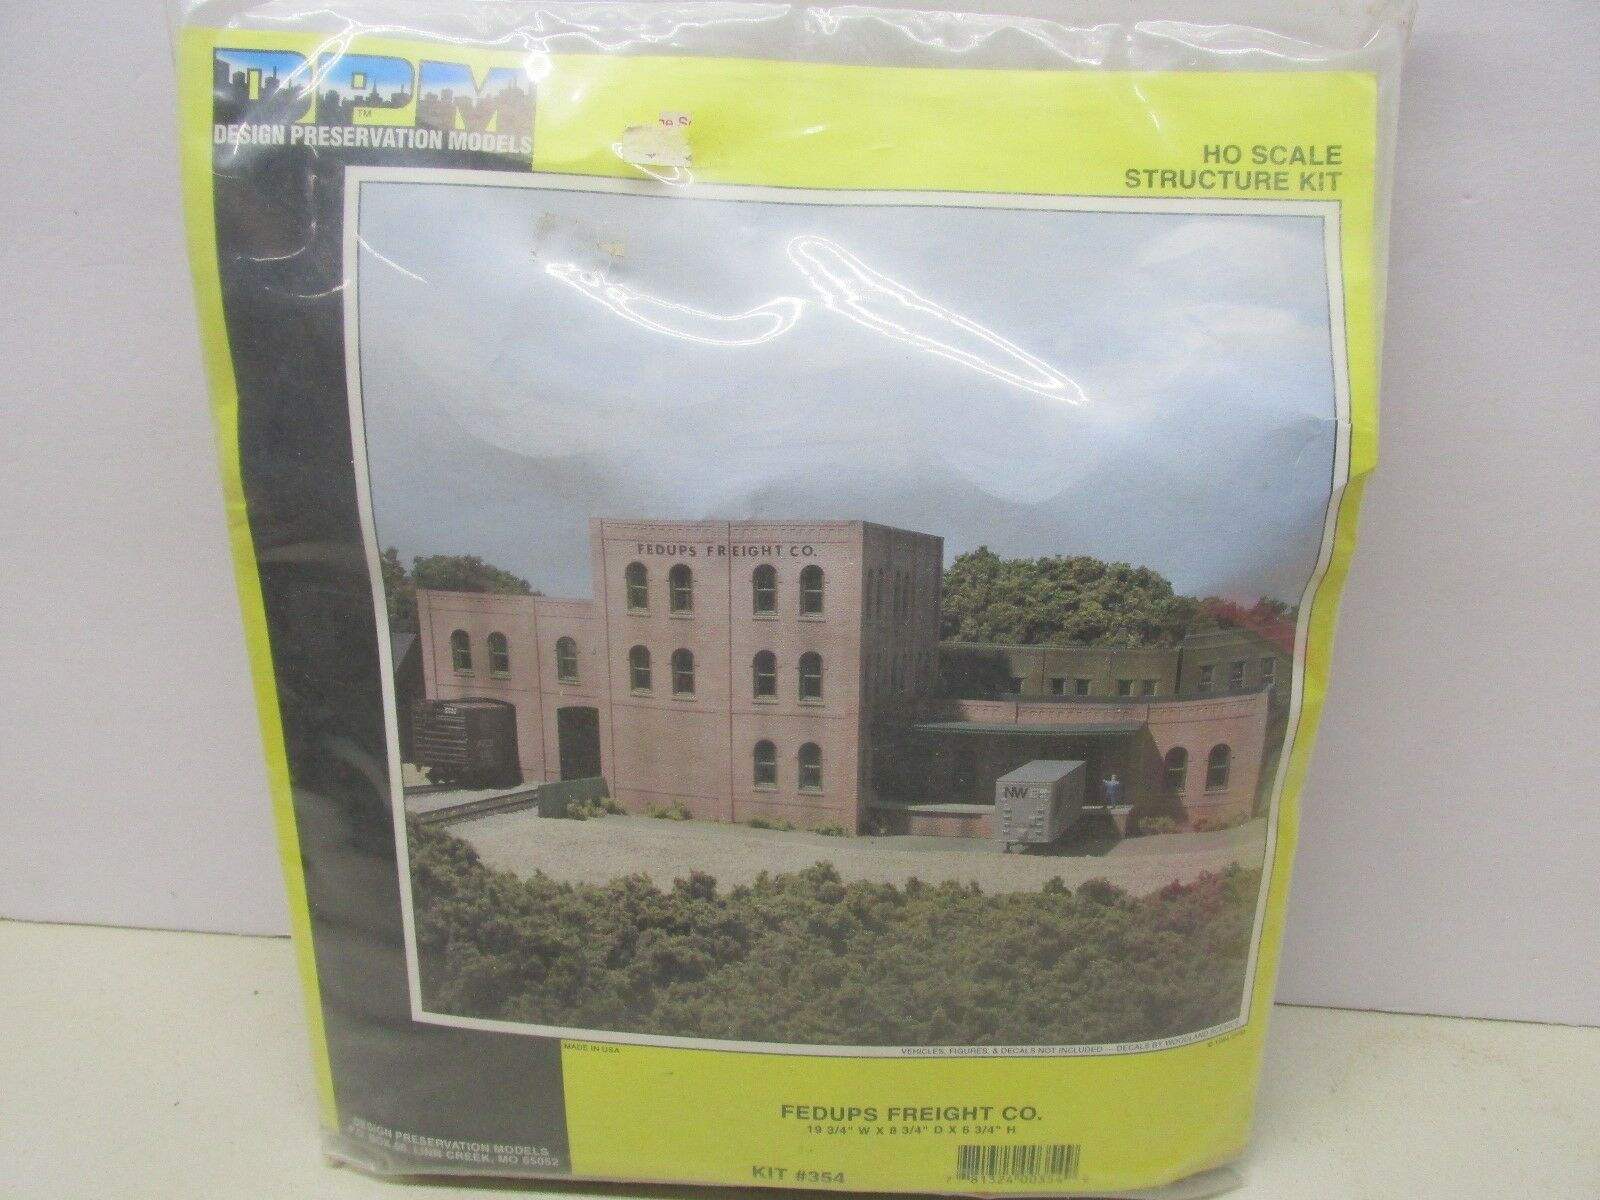 DPM- FEDUPS FREIGHT CO. KIT HO SCALE